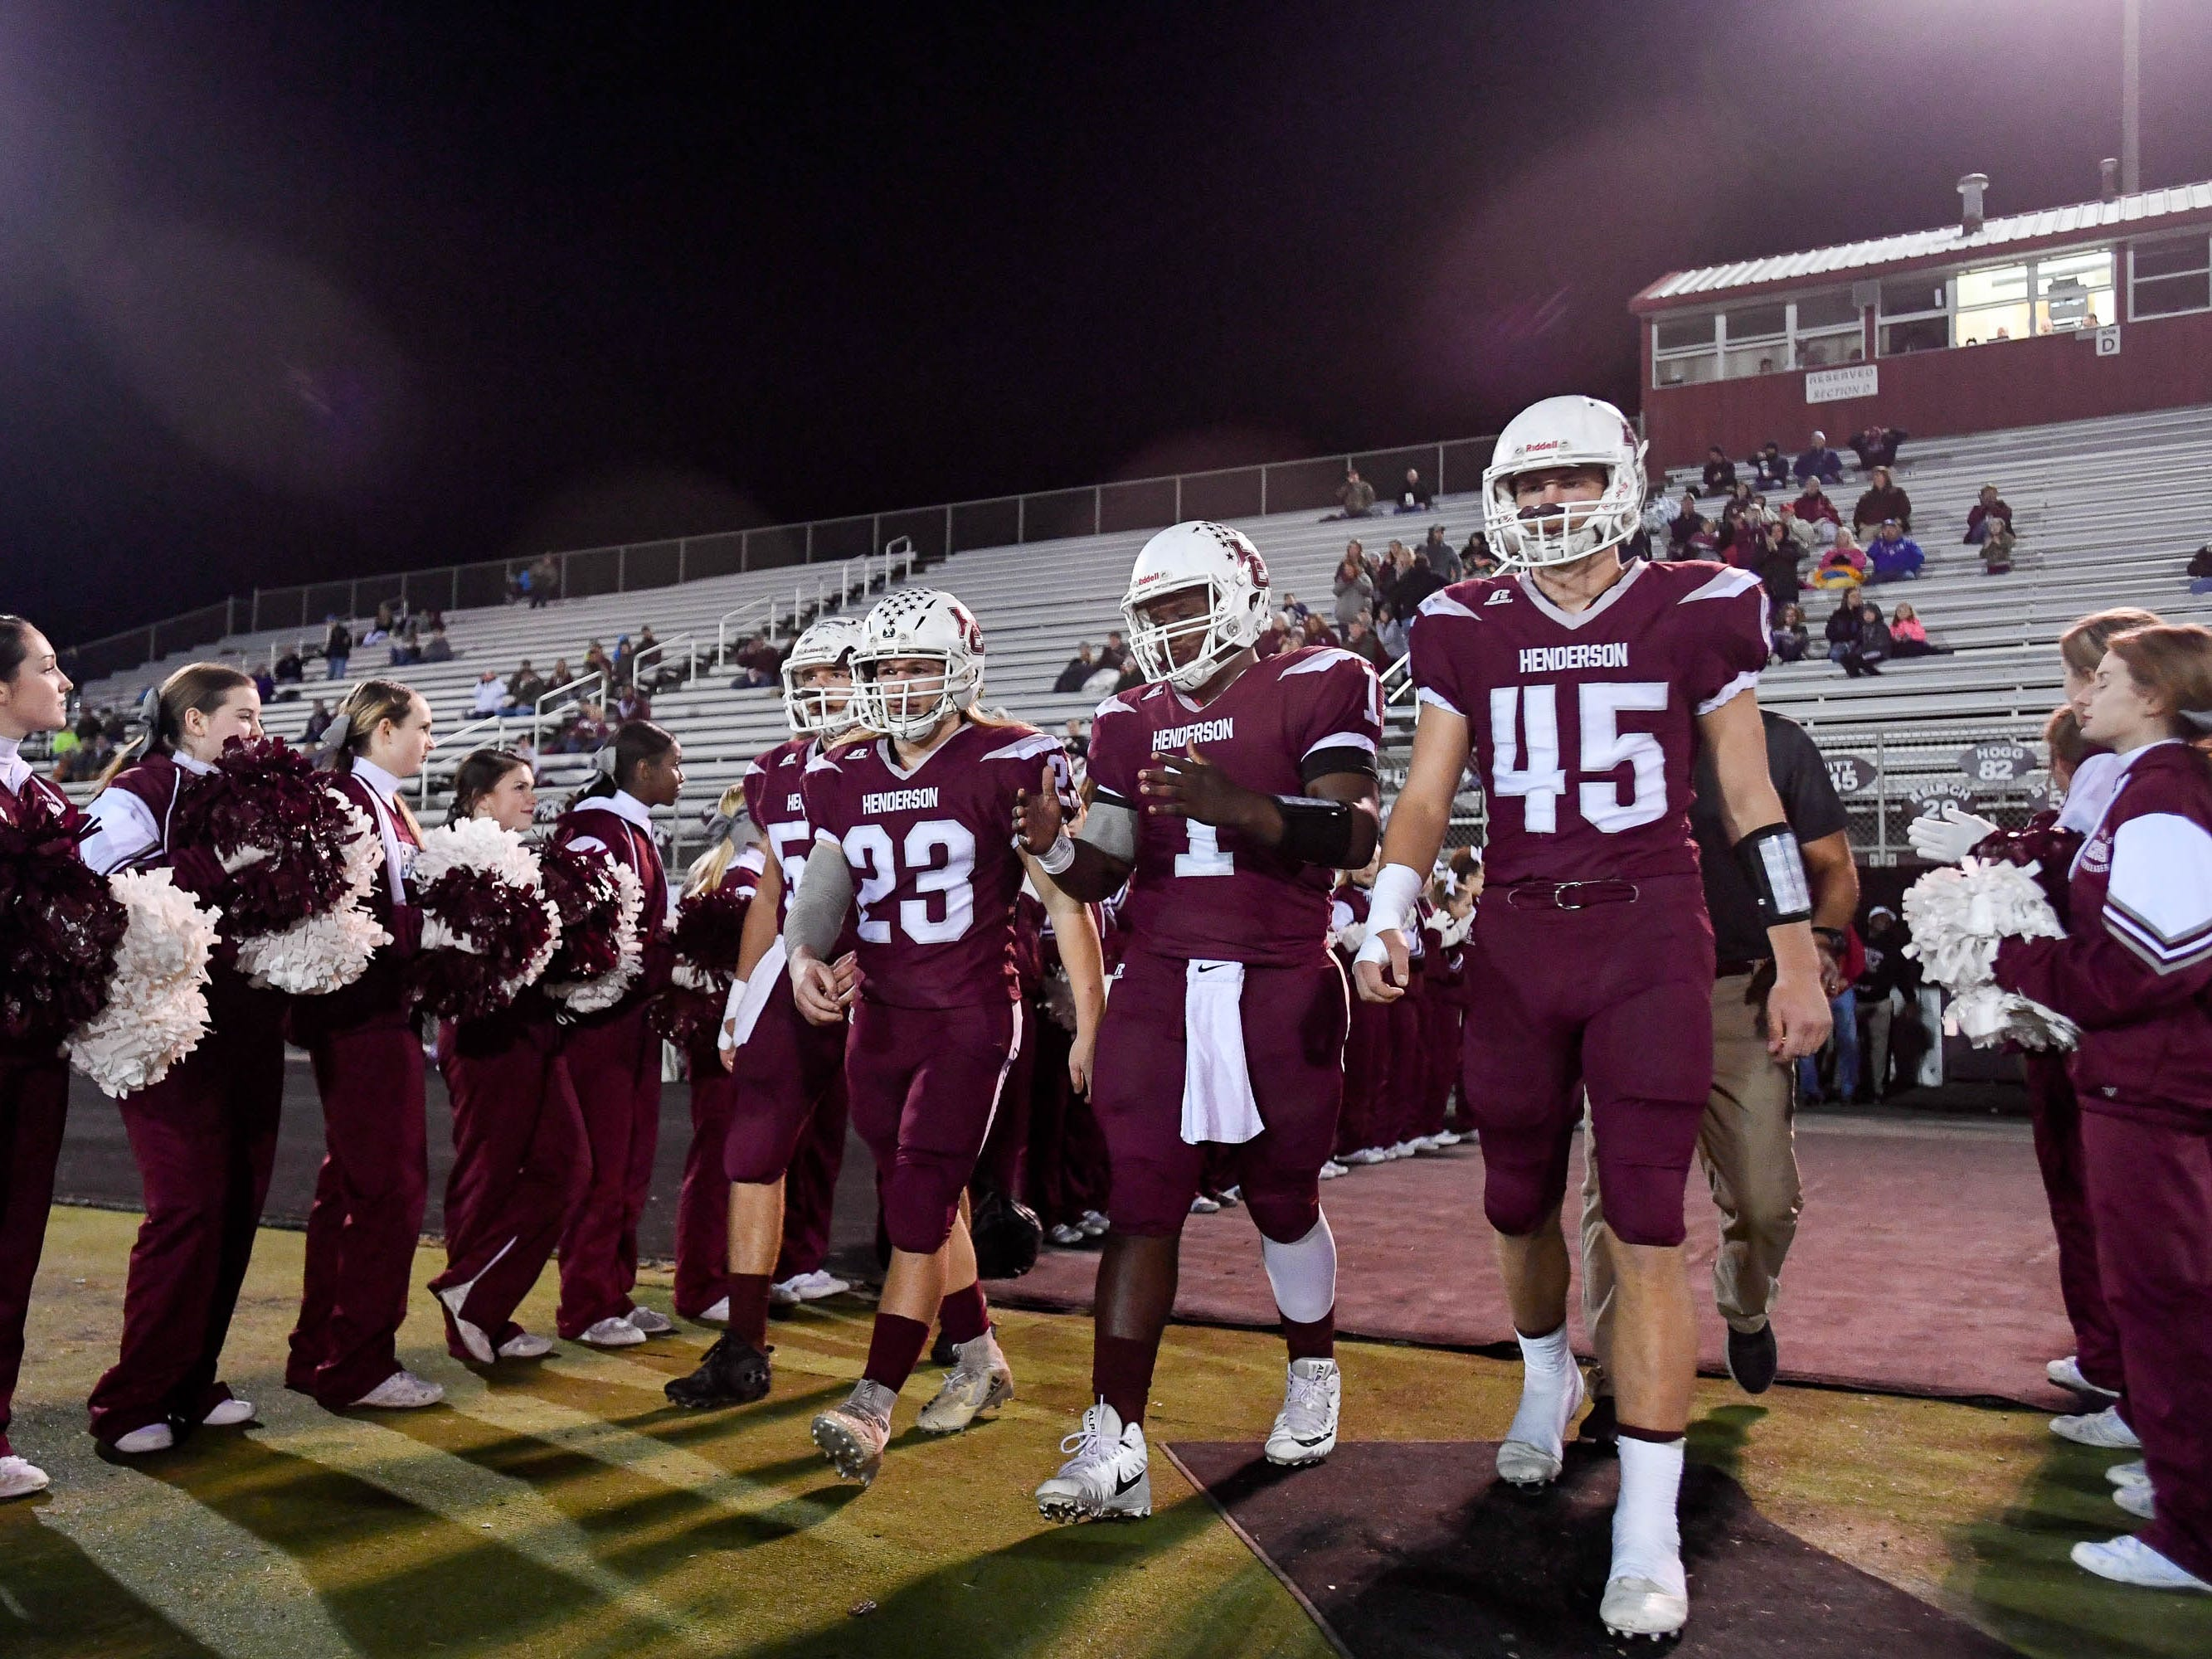 Team captains Henderson's Breck Bender (54), Meric Stinson (23) , Skip Patterson (1) and Ian Pitt (45) take the field for a the coin toss as the Henderson County Colonels play the Louisville Eastern Eagles in the first round of the 6-A playoffs at Colonel Field Friday, November 2, 2018.